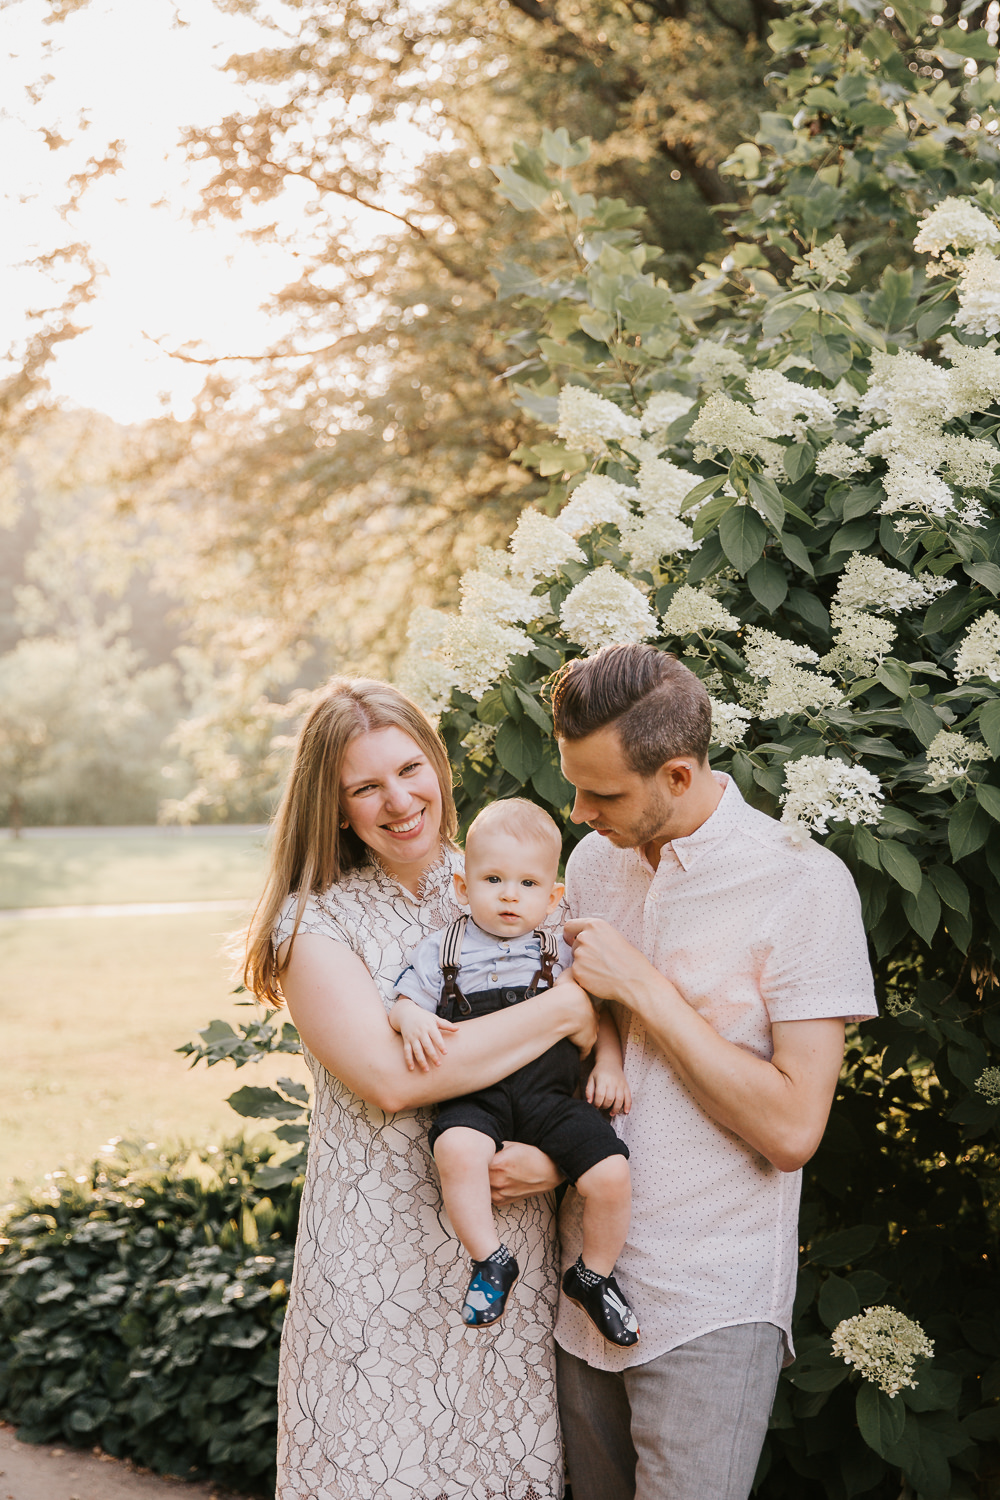 family of 3 standing in high park, setting golden sun behind them, mom carrying 8 month old blonde baby boy and smiling at camera, dad looking at son - Newmarket Lifestyle Photos